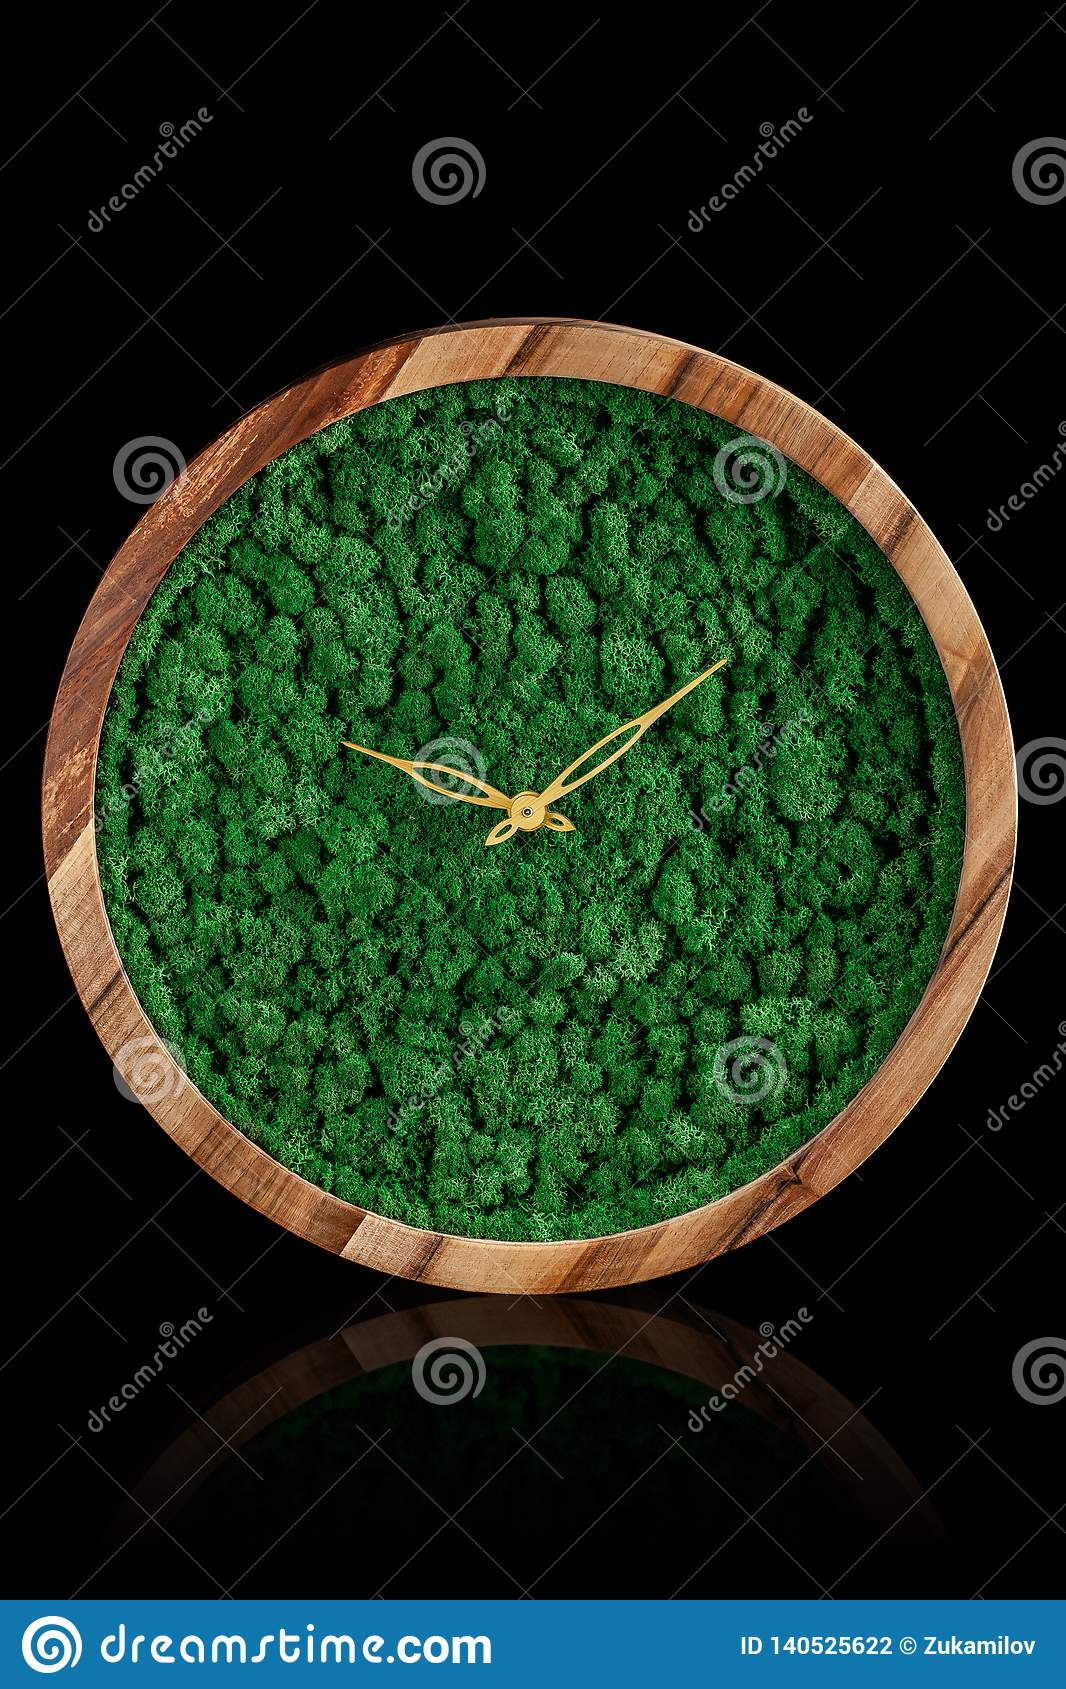 Wooden clock with color stabilized moss on a black background with mirror otgruzheniya. Trend 2019. Wall Clock copy space